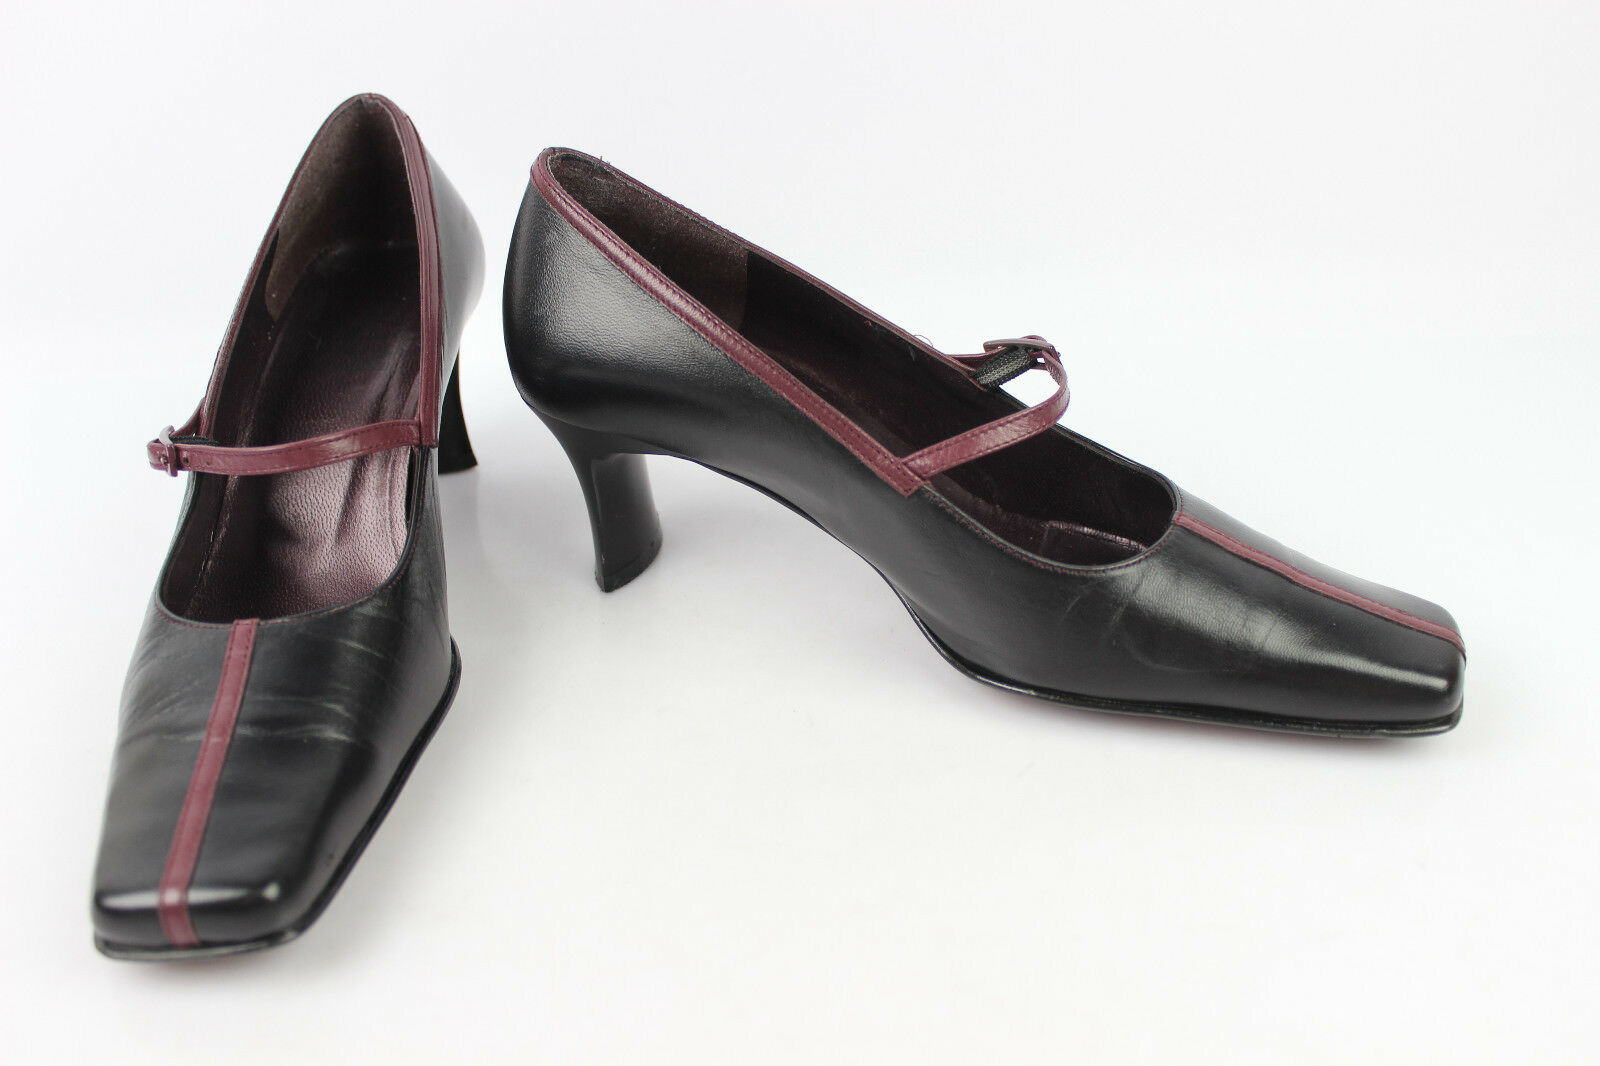 962a491c1e18c shoes flanged CORINE Black Leather and plum T 37 VERY GOOD CONDITION ...